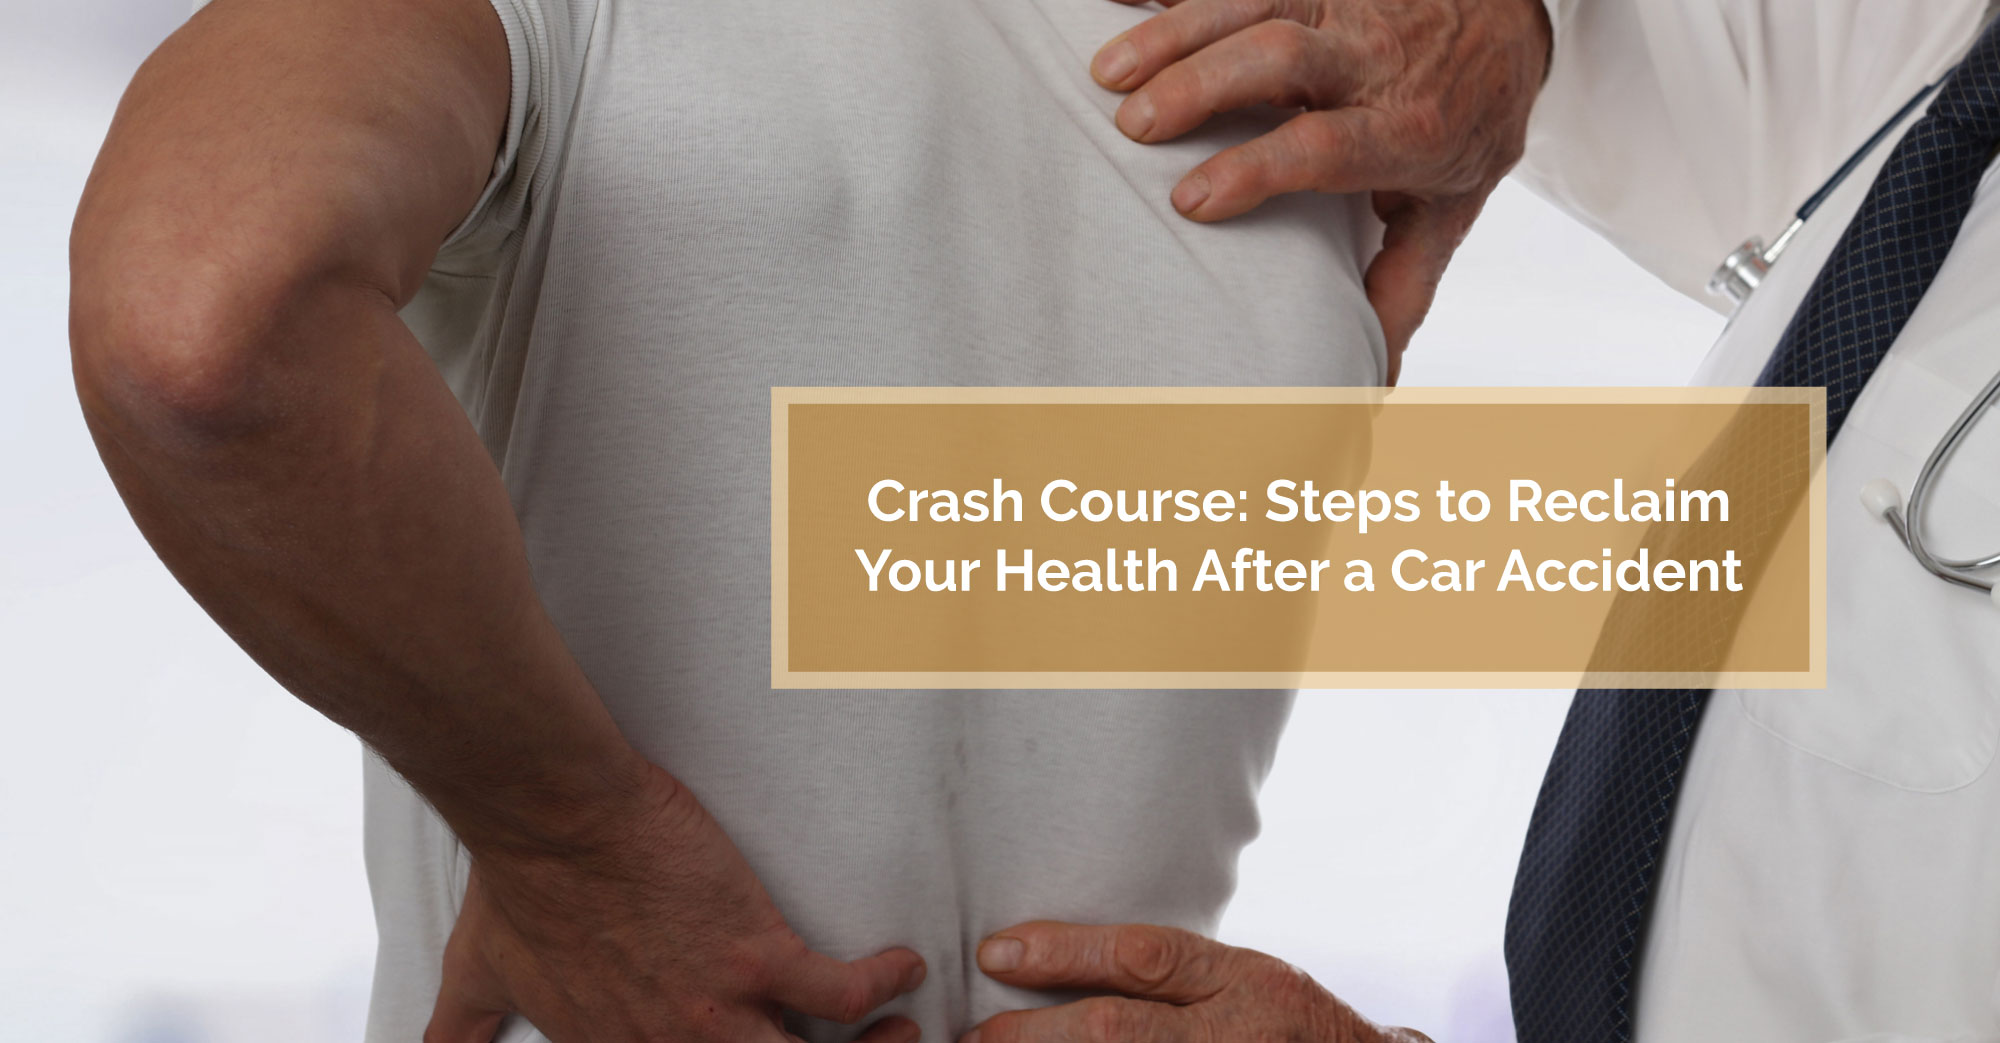 Steps to Reclaim Your Health After a Car Accident